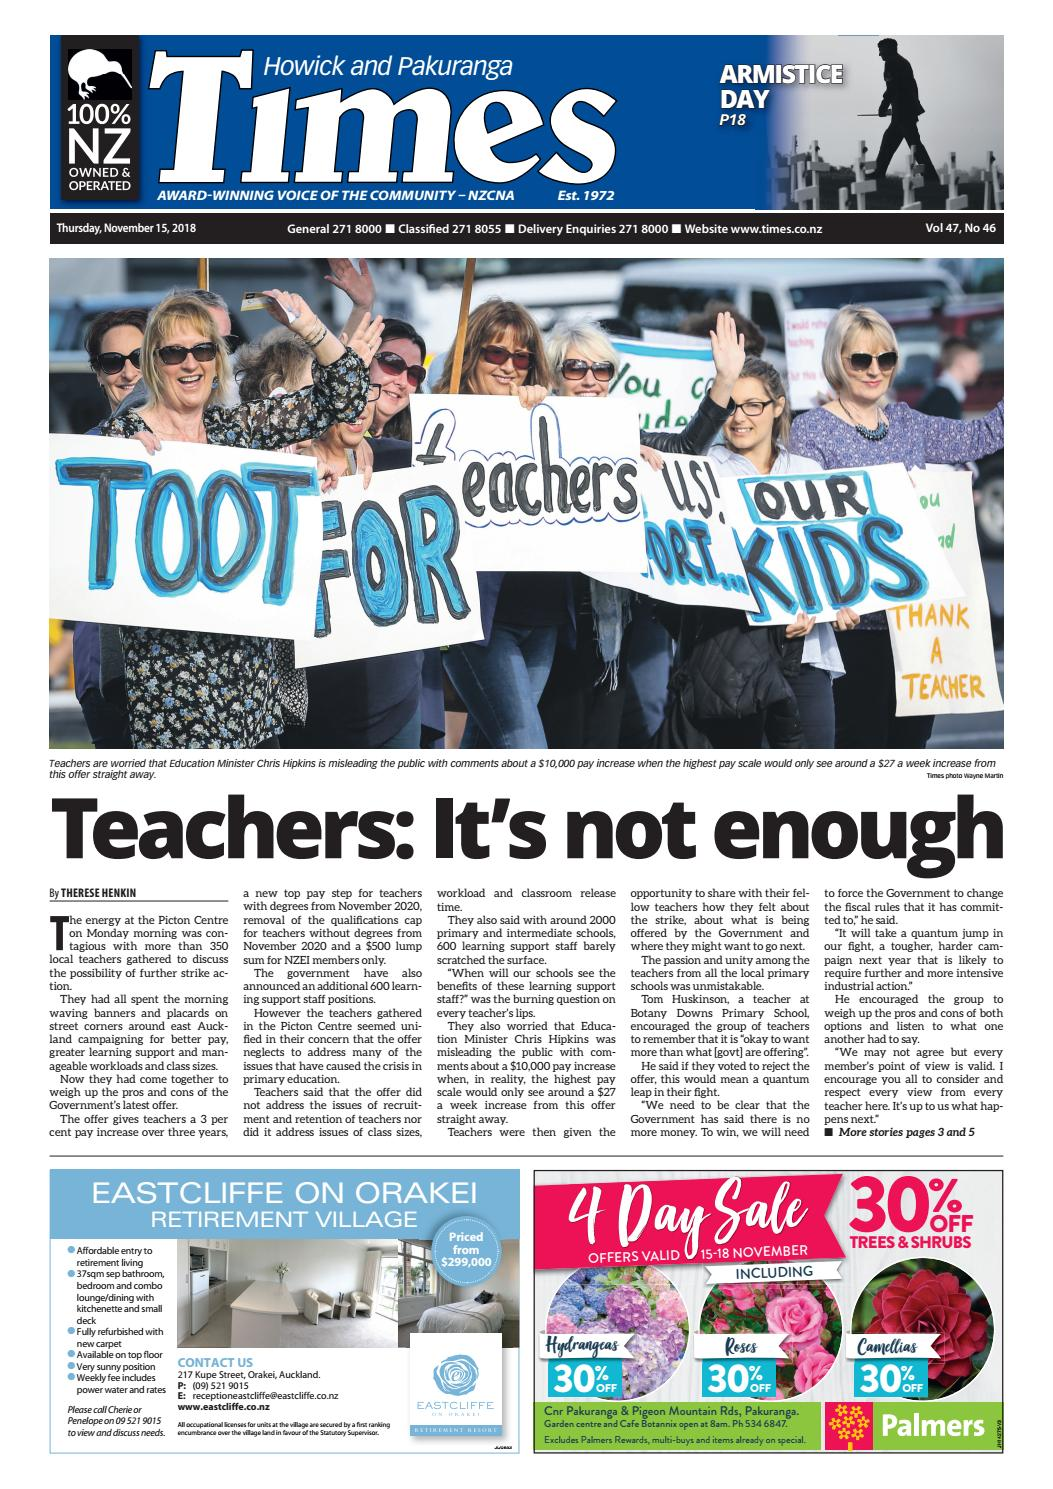 Howick and Pakuranga Times, Thursday, November 15, 2018 by